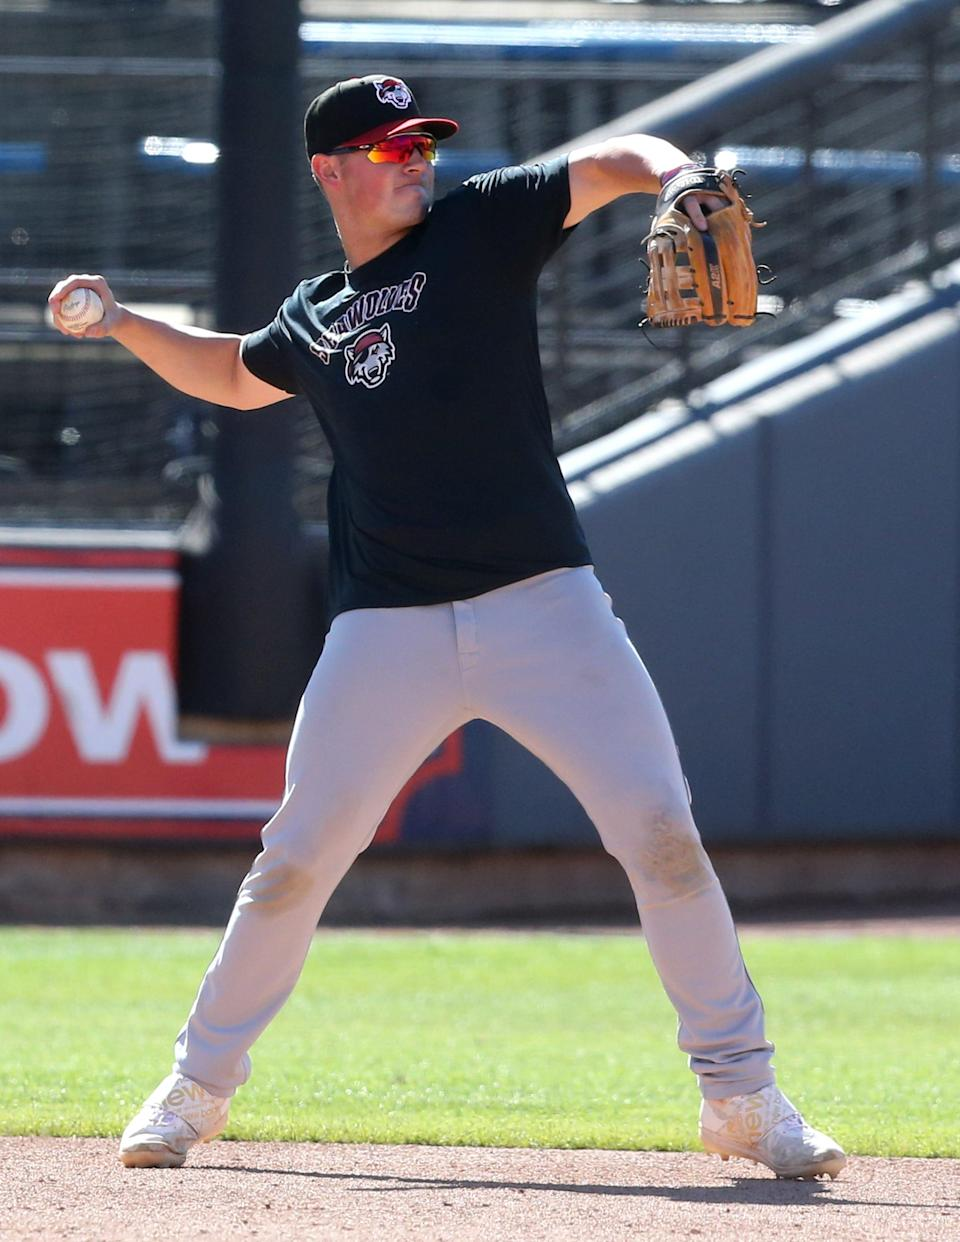 Spencer Torkelson of the Erie SeaWolves takes infield practice prior to their game against the Akron RubberDucks at Canal Park in Akron on Tuesday, June 22, 2021.